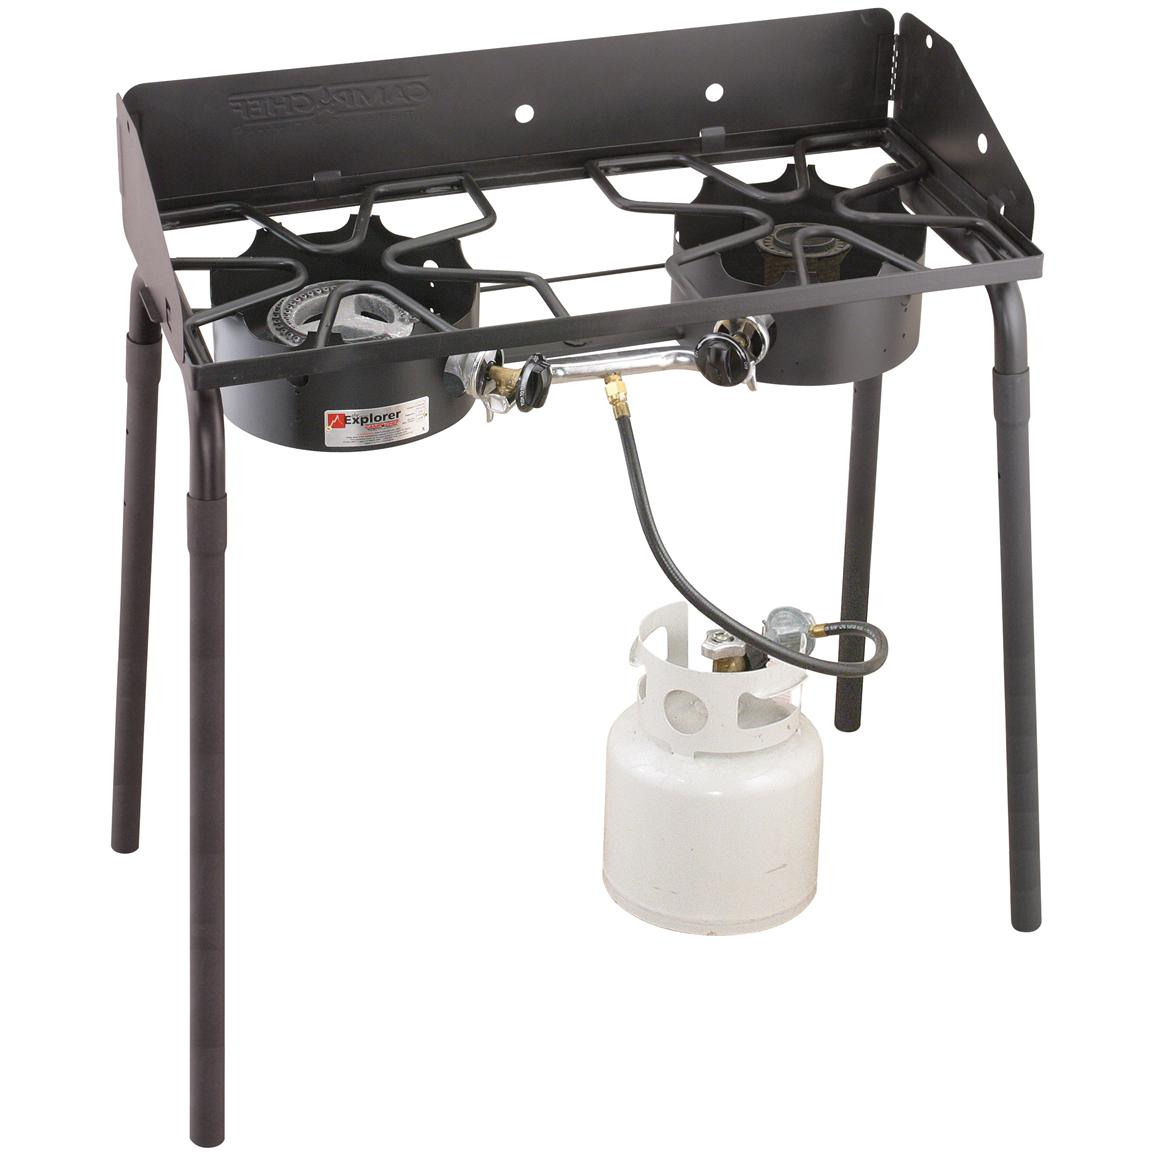 Camp Chef Outdoorsman High / Low Combo Stove